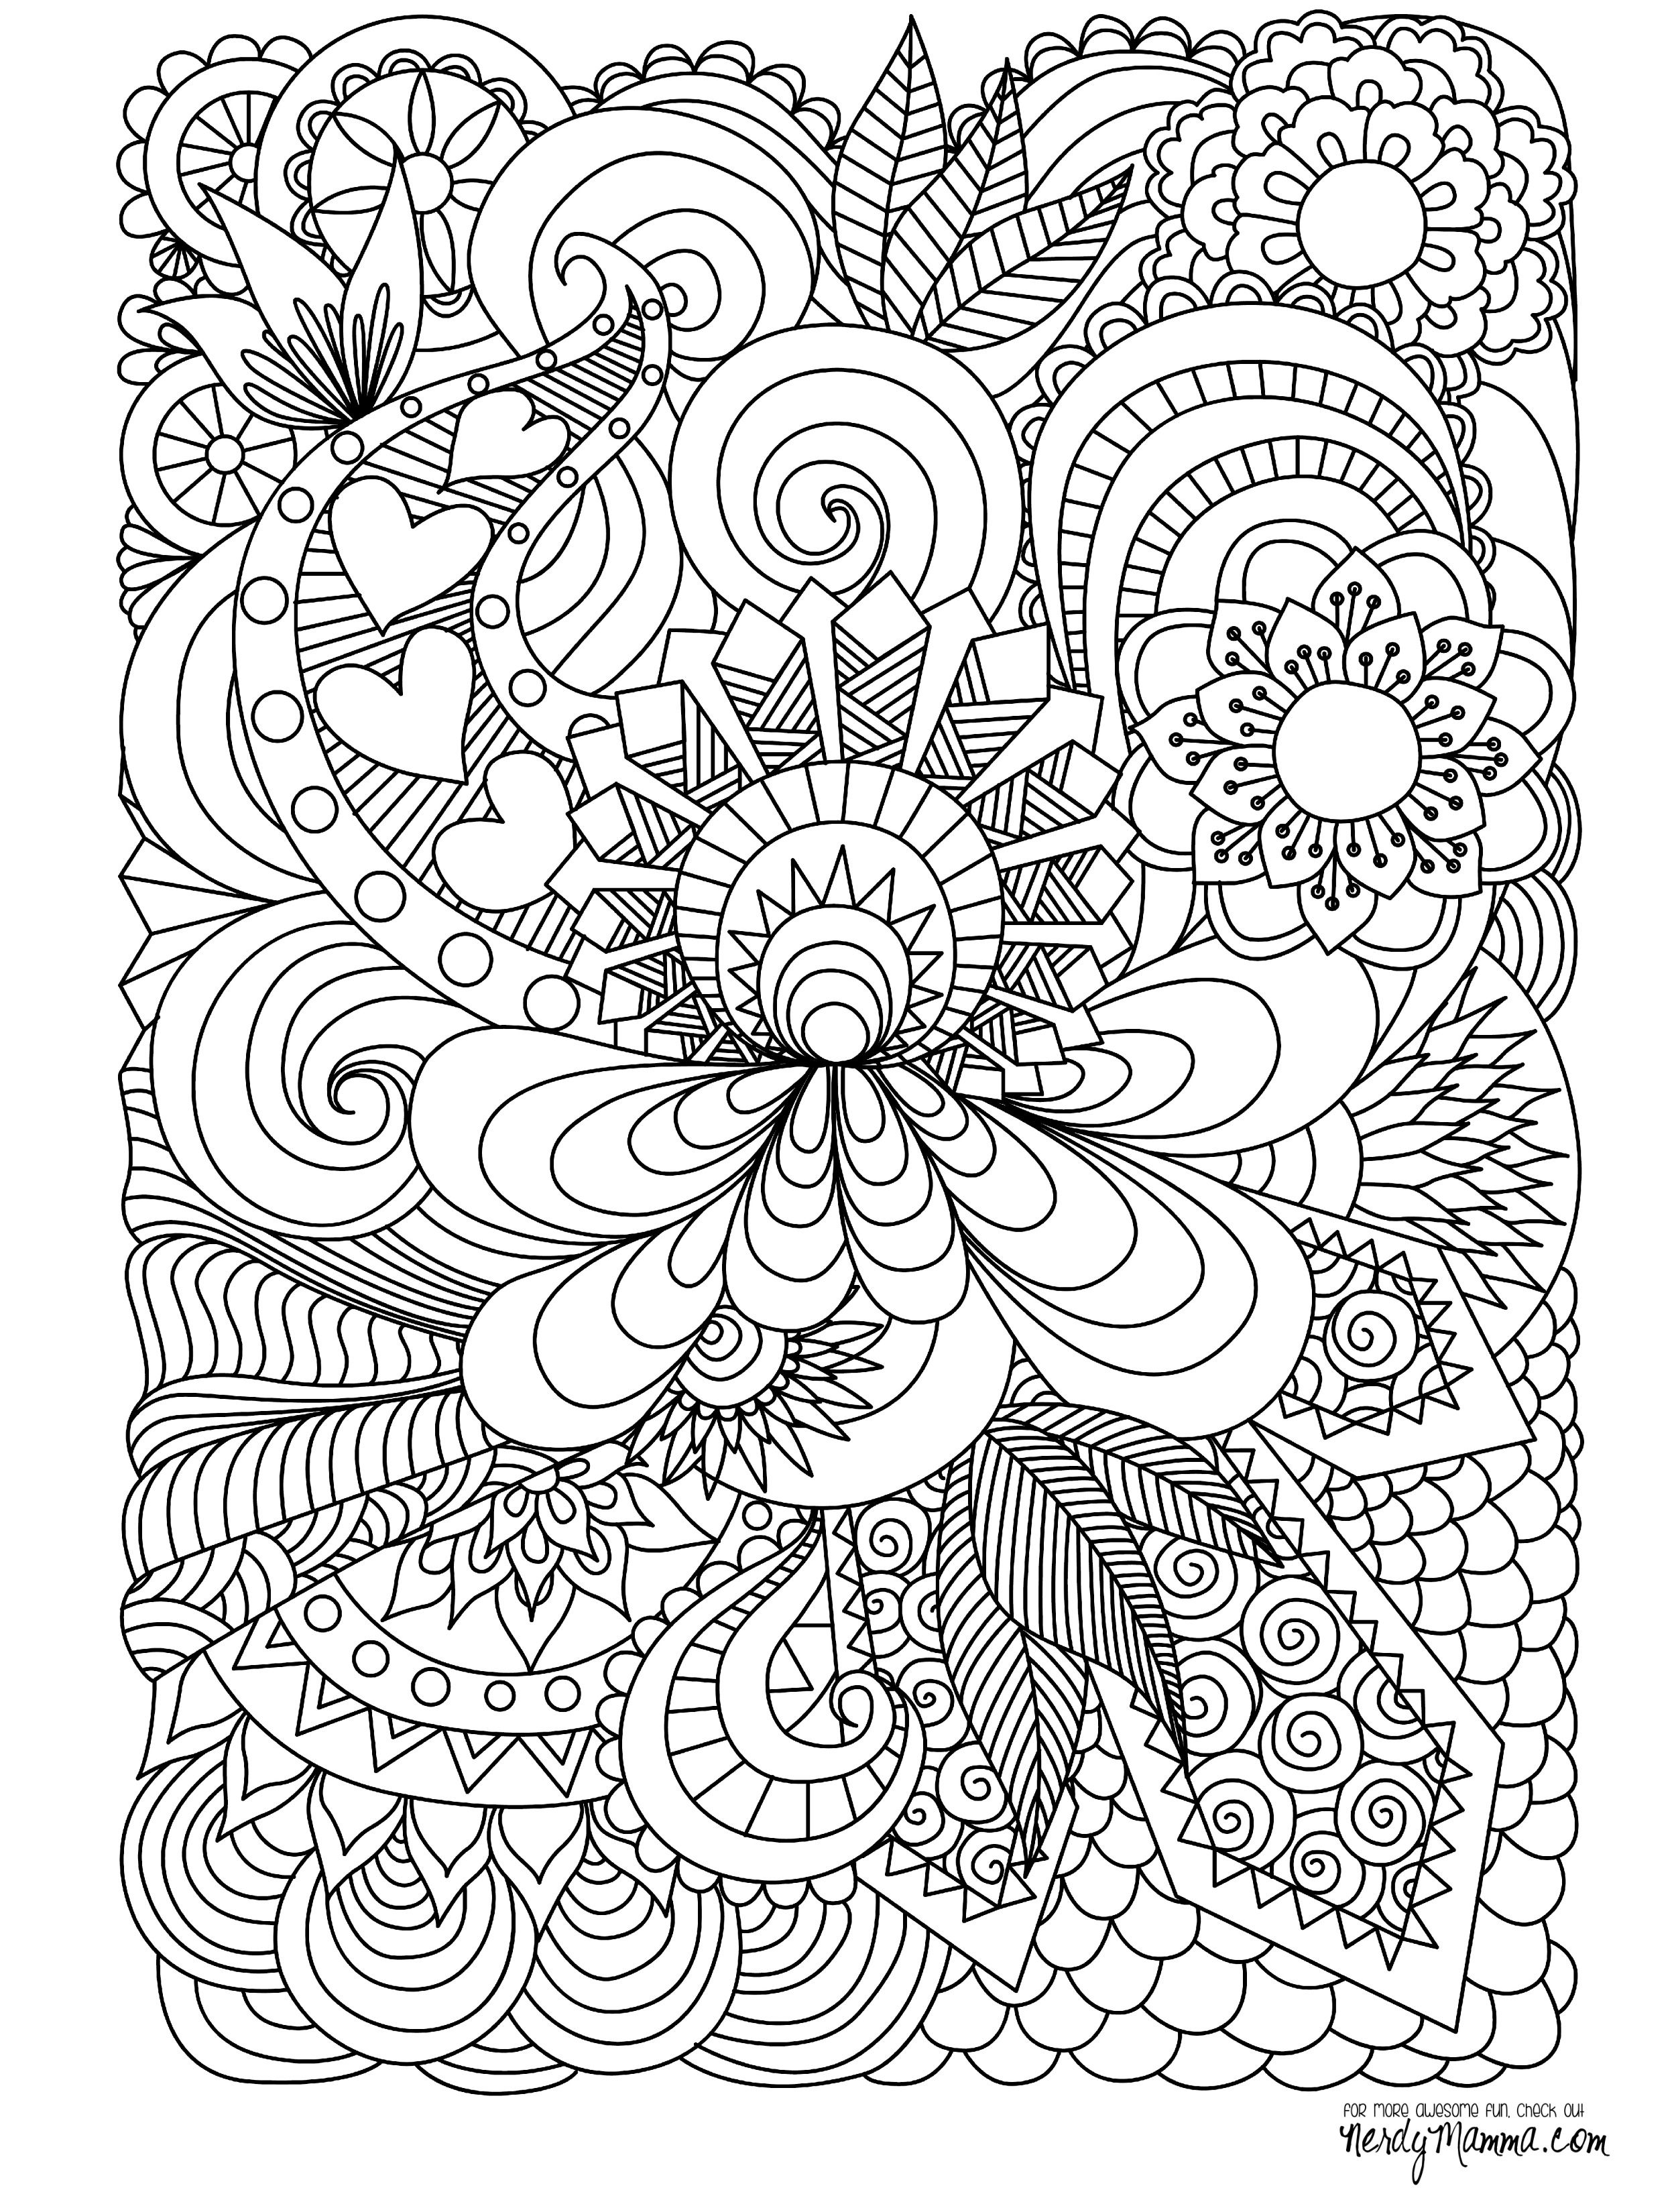 11 Free Printable Adult Coloring Pages | Malebogen | Pinterest ...